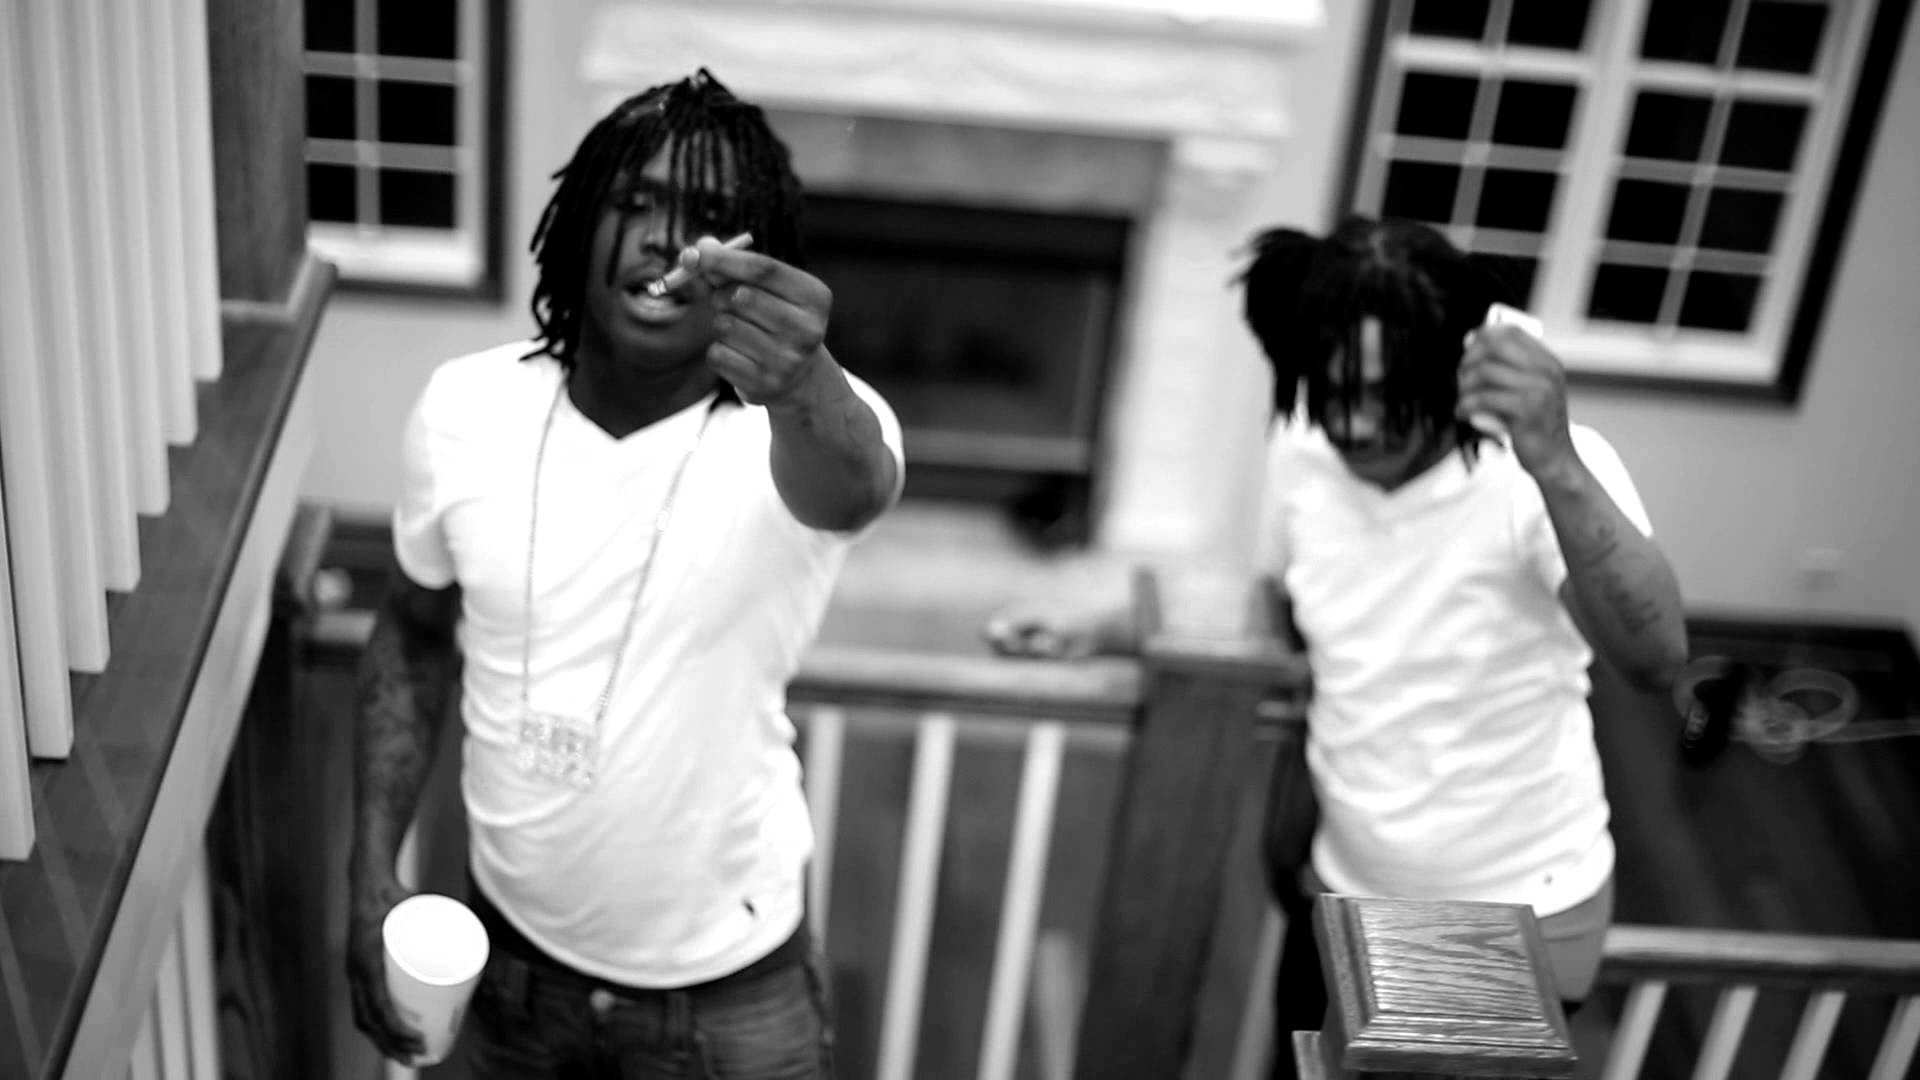 Wallpaper Compilation : ChiefKeef